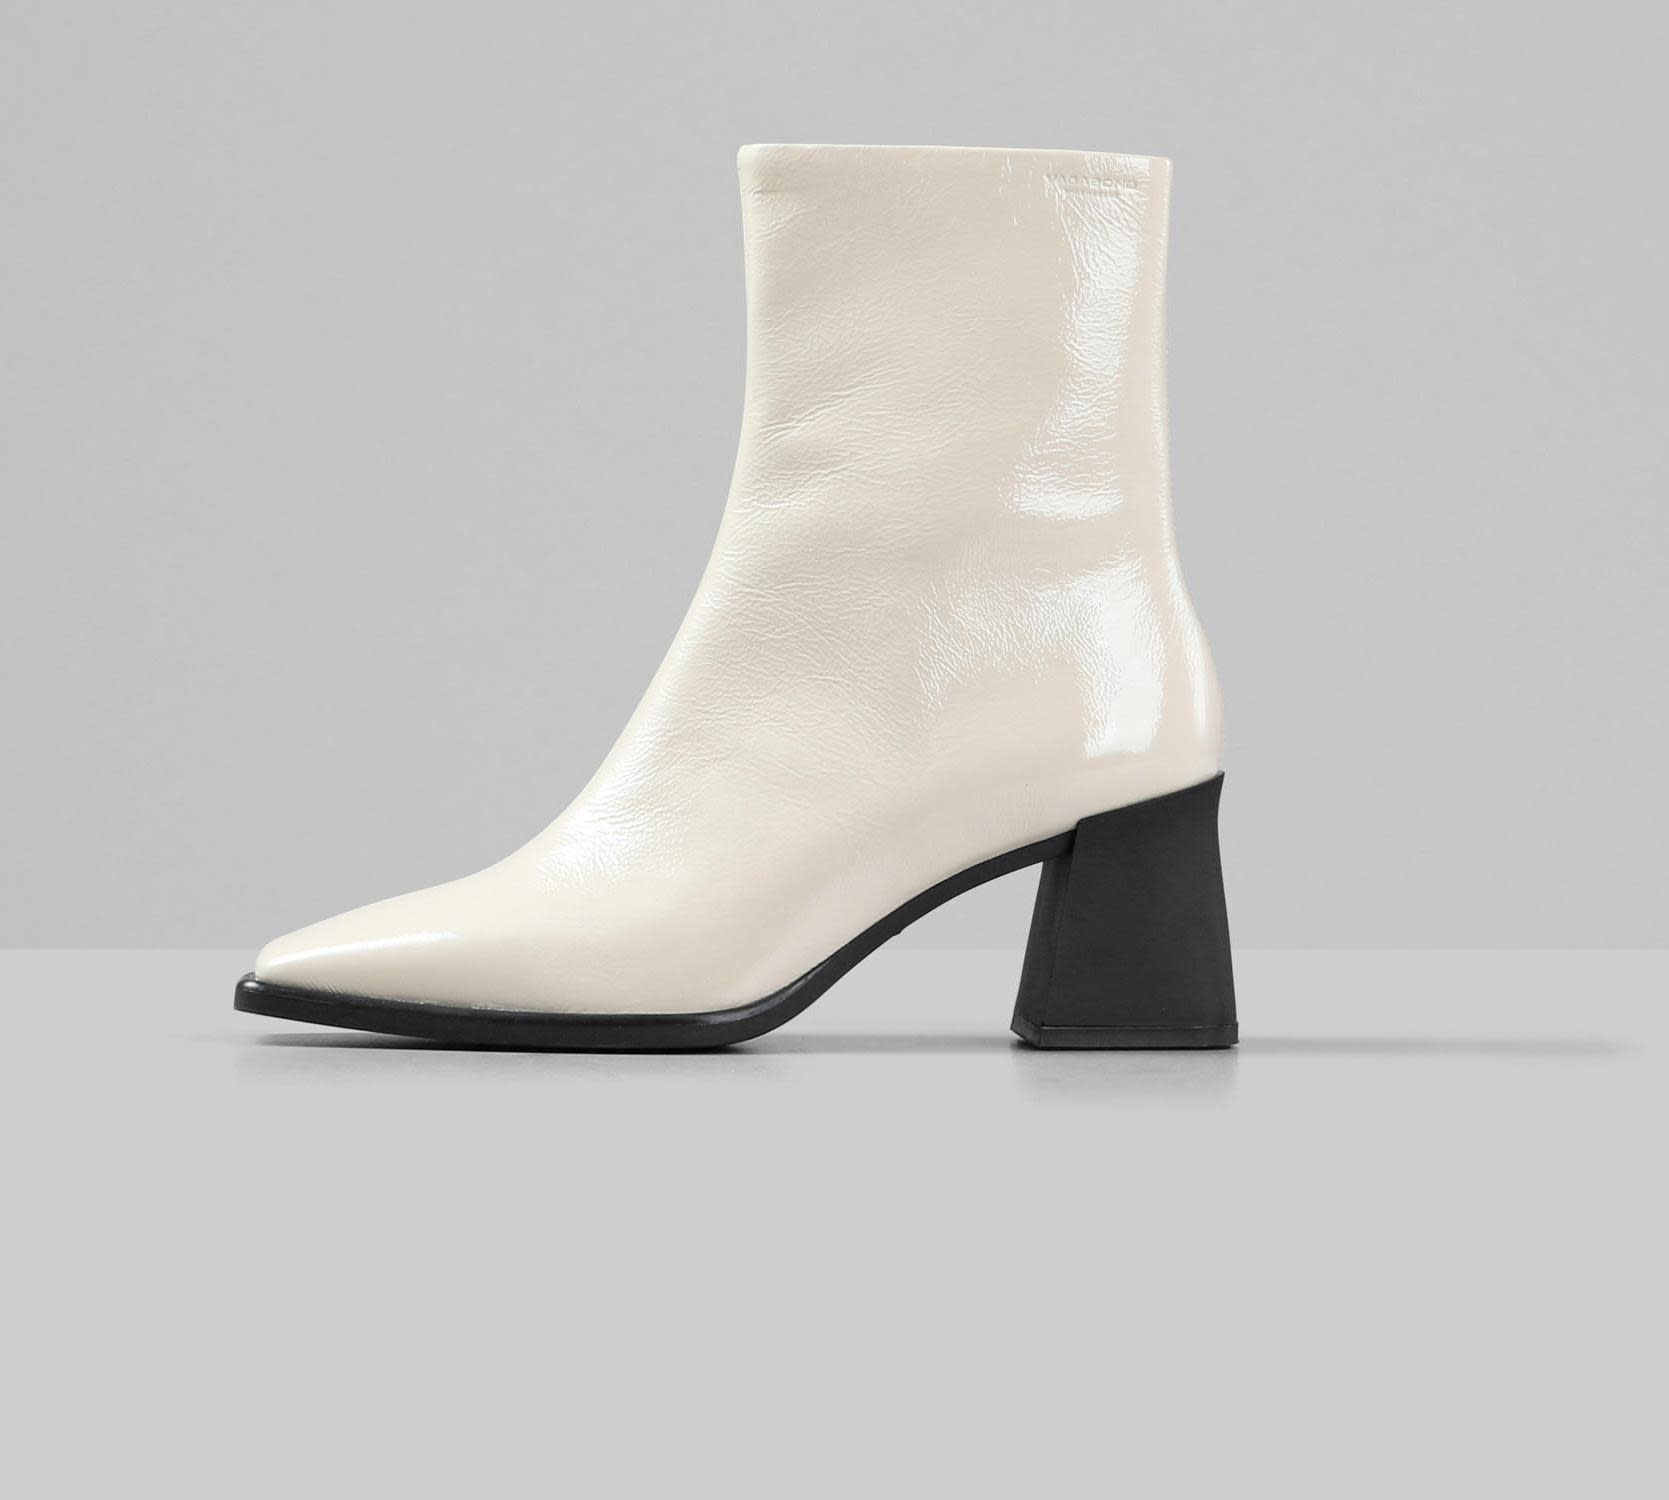 Hedda Patent White Leather Boots-1